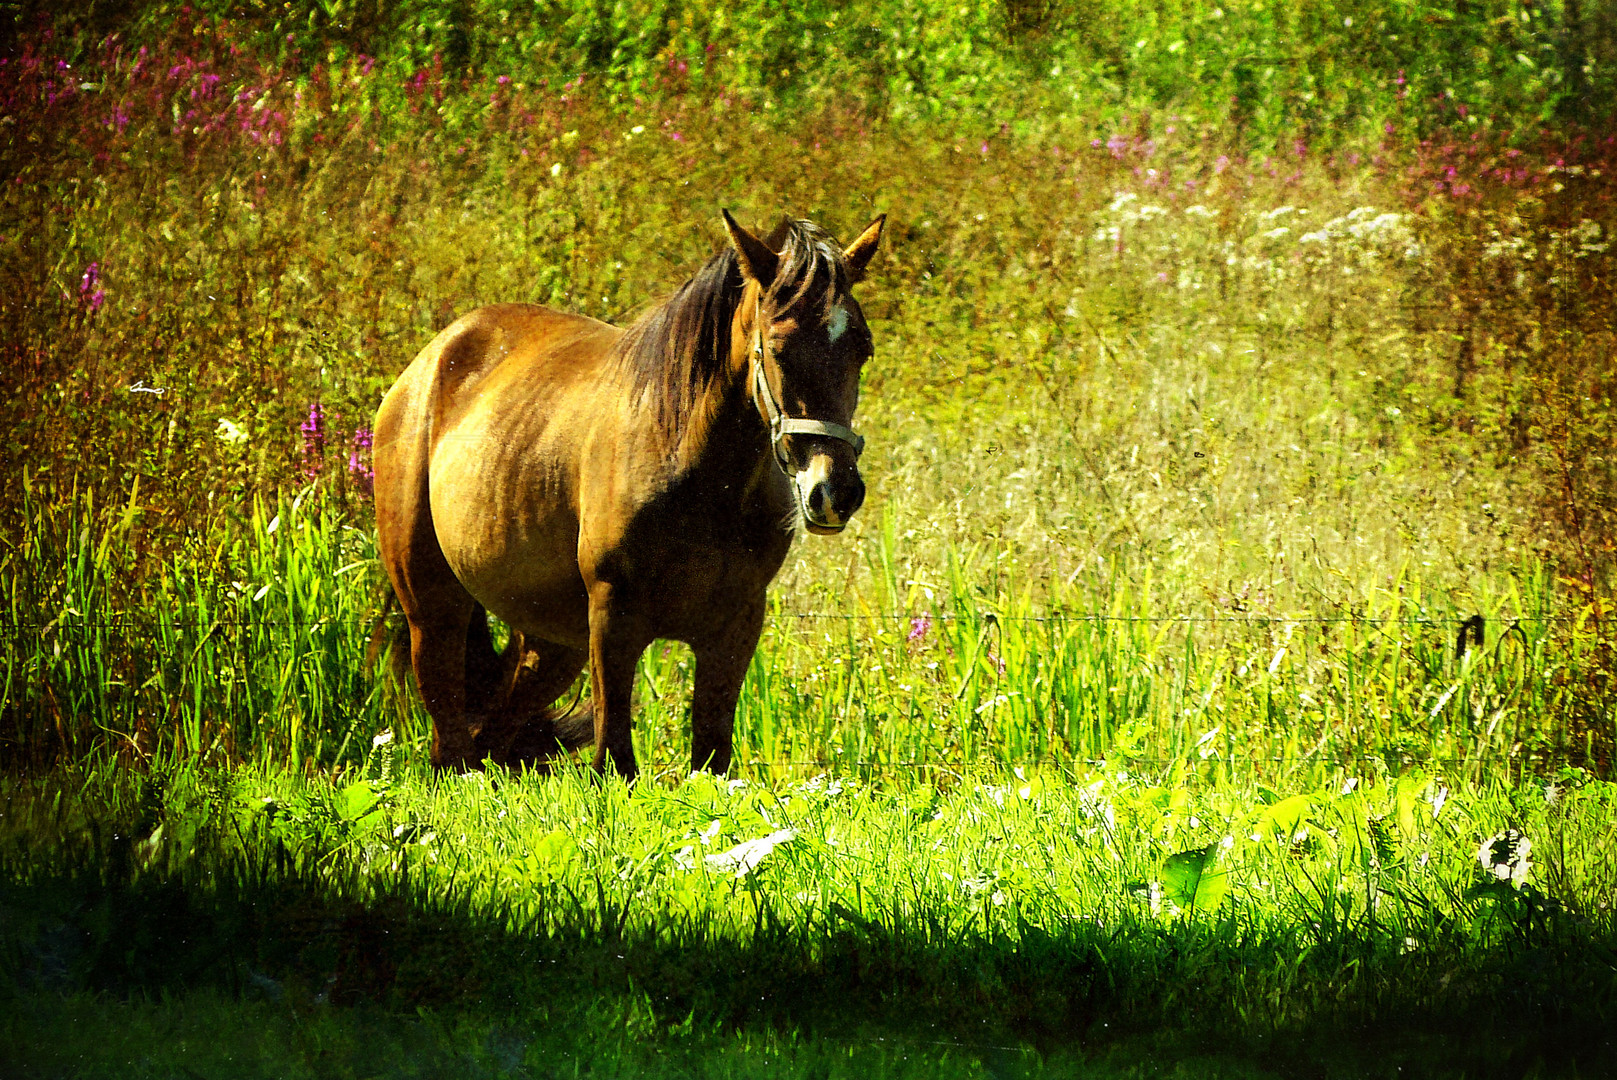 ... horse in the bosom of nature